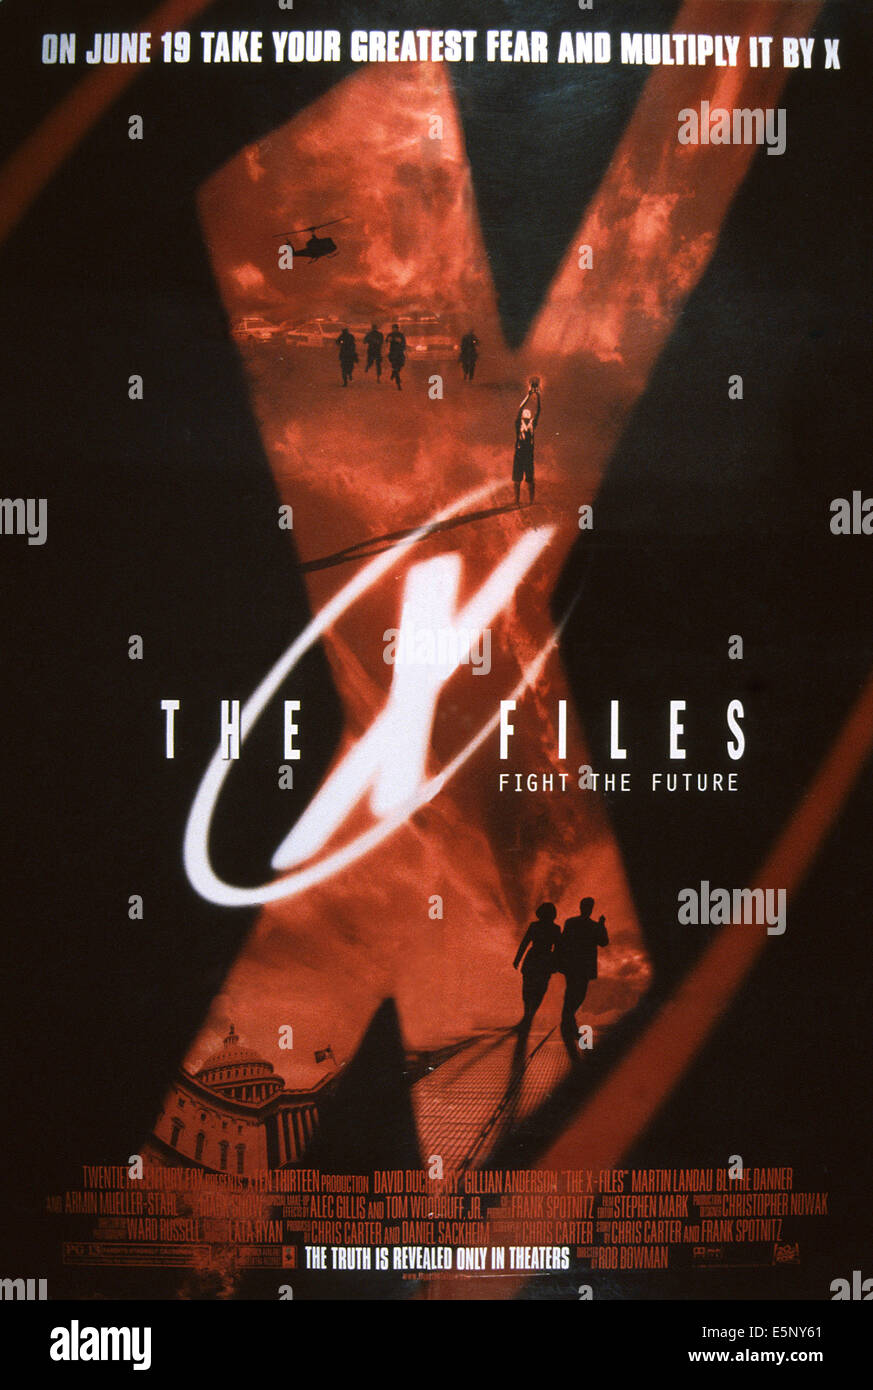 THE X-FILES MOVIE, US advance poster art, 1998. TM and Copyright ©20th Century Fox Film Corp. All rights reserved/courtesy Stock Photo